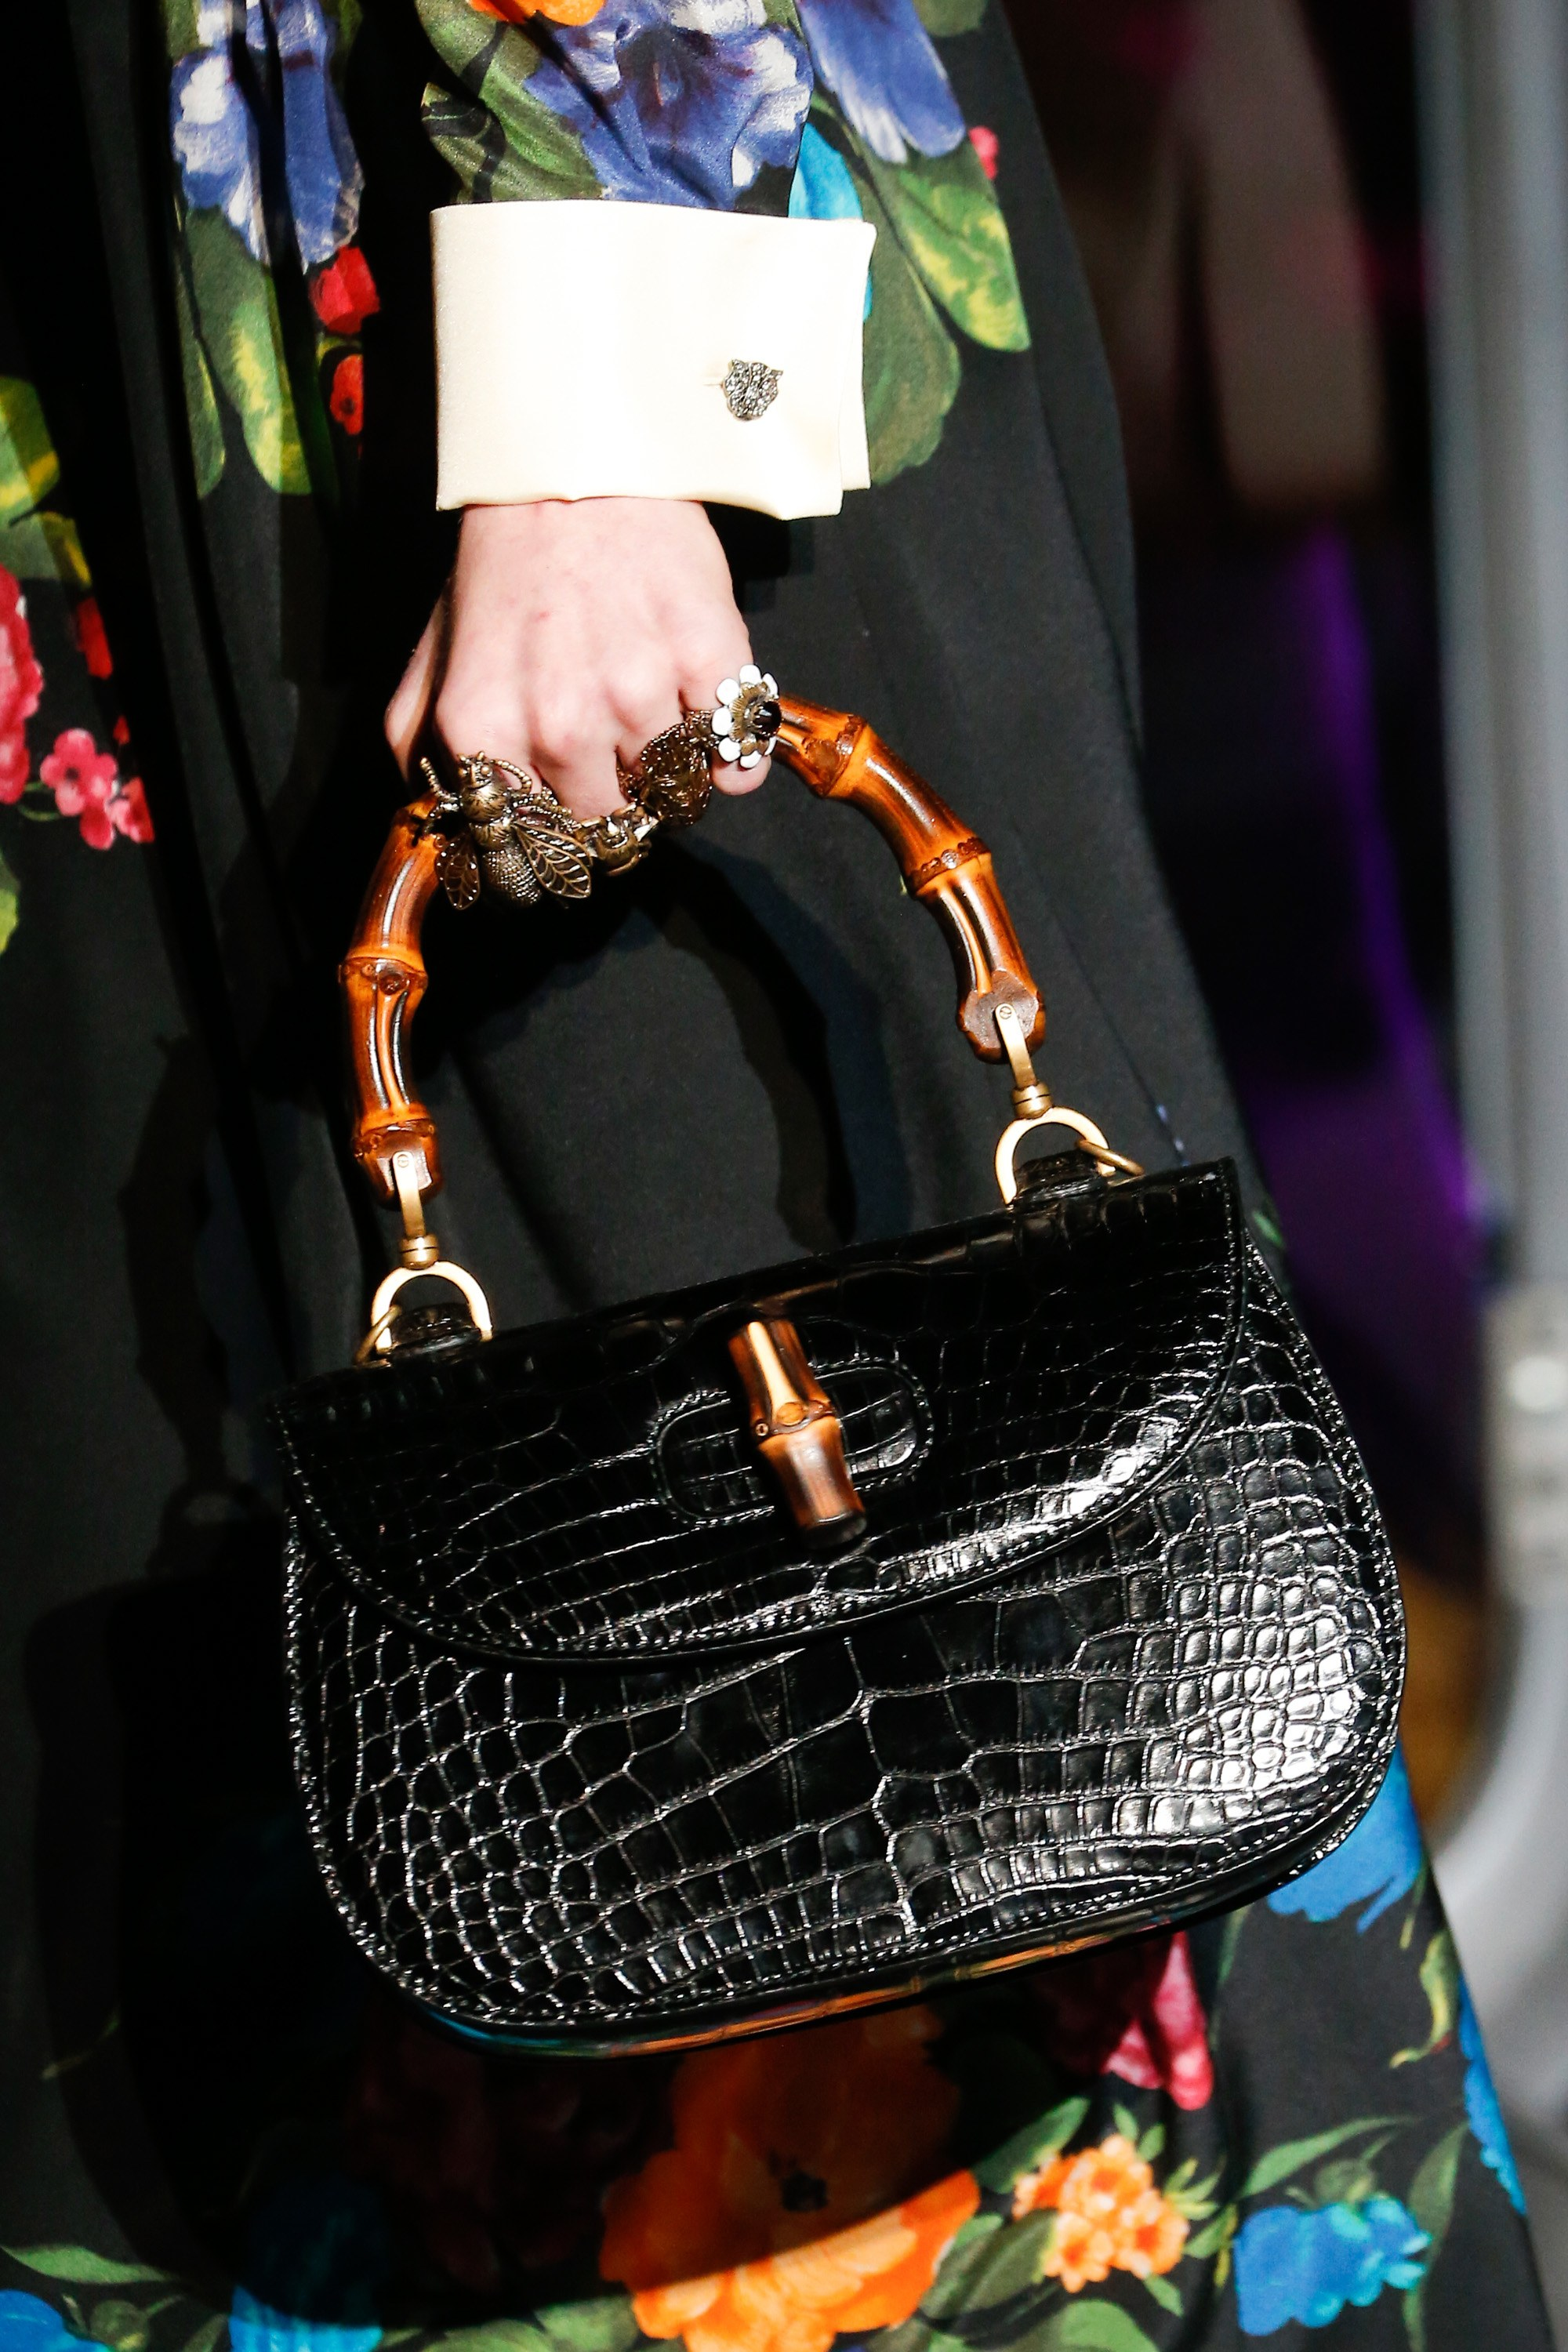 gucci bags 2017 black. gucci black crocodile bamboo top handle bag - fall 2017 bags